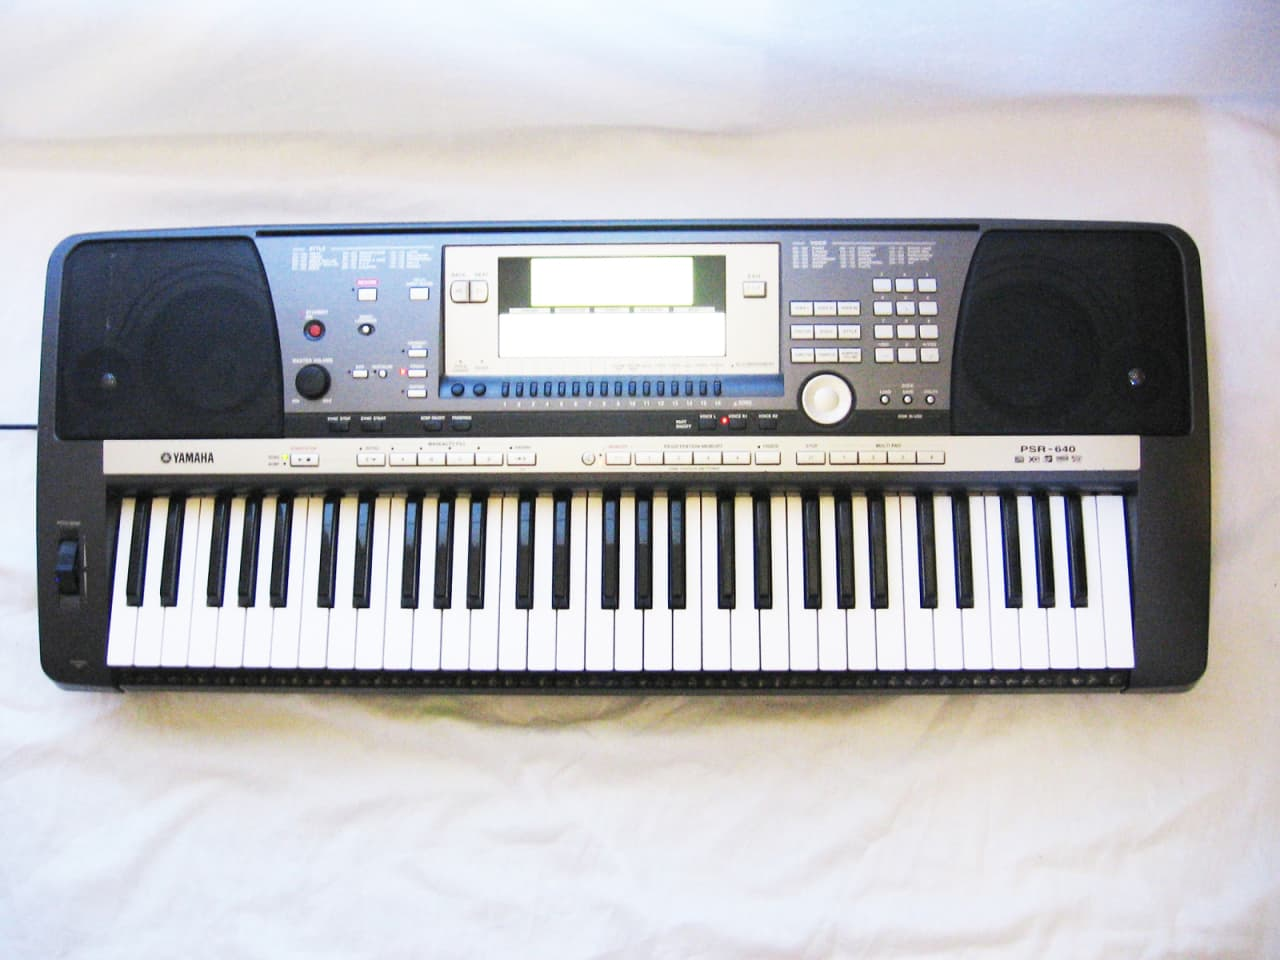 yamaha psr 640 synthesizer keyboard arranger workstation reverb. Black Bedroom Furniture Sets. Home Design Ideas